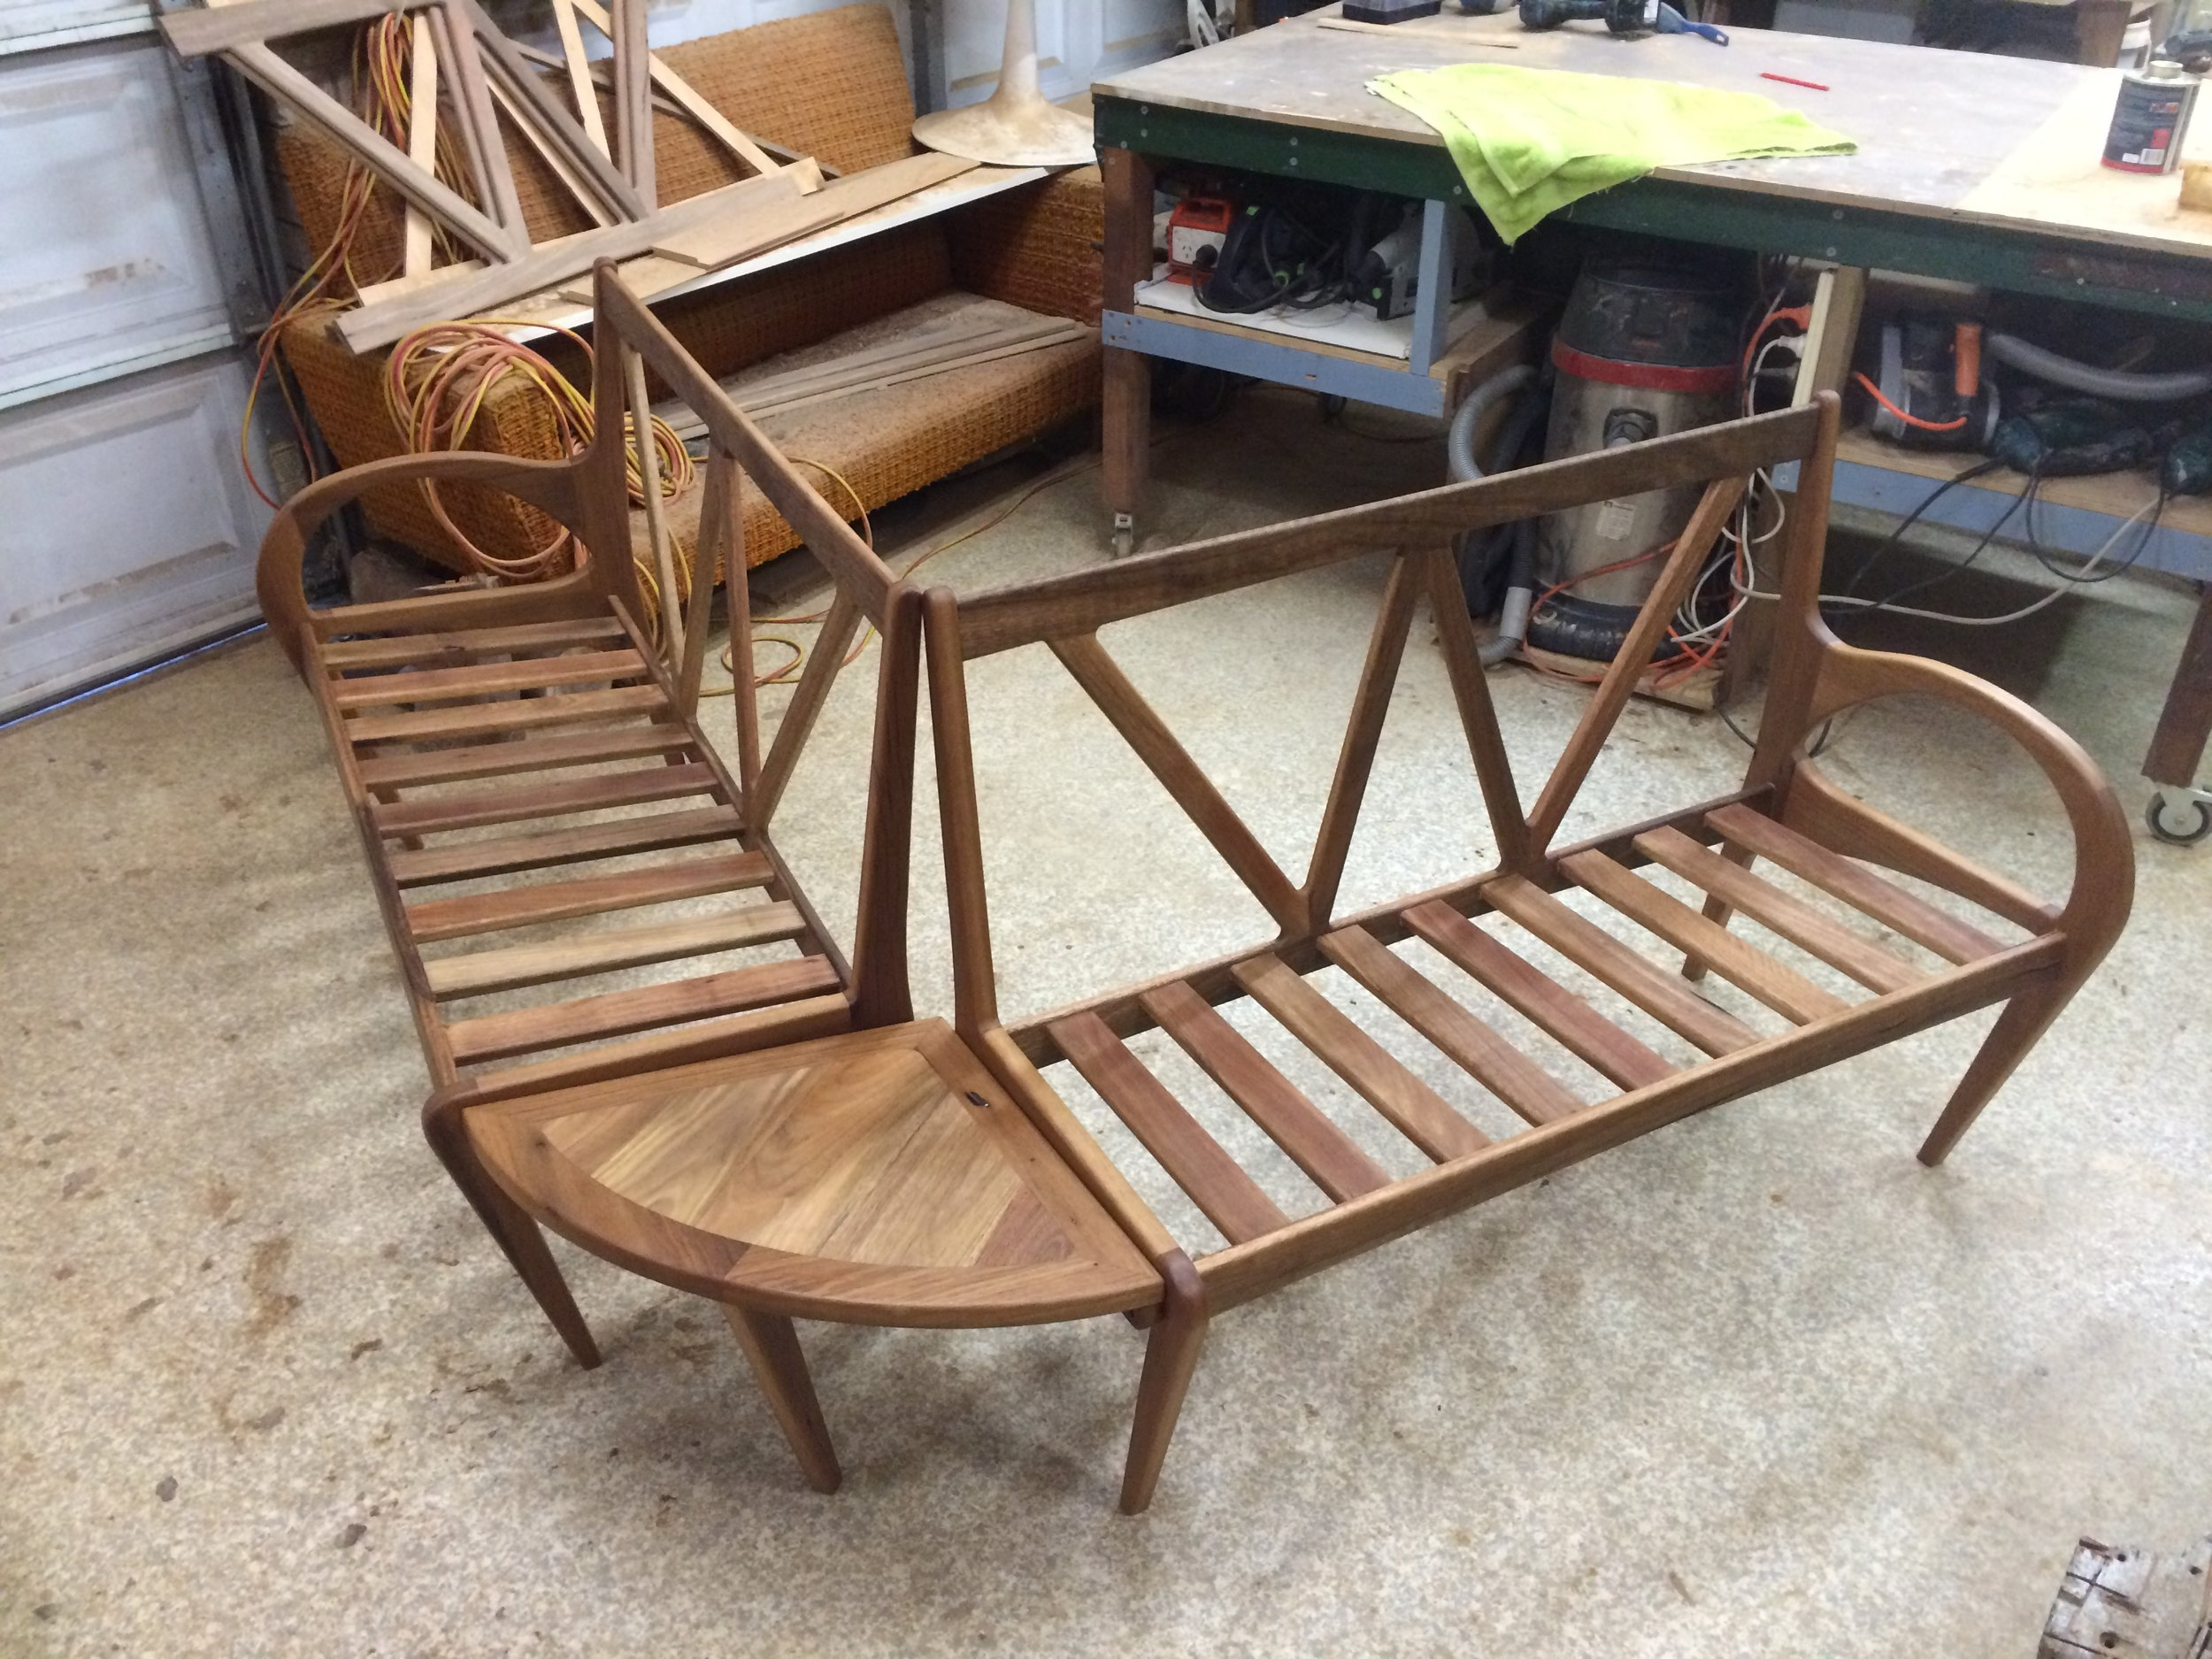 Designed and made by Leaf handcrafted Furniture